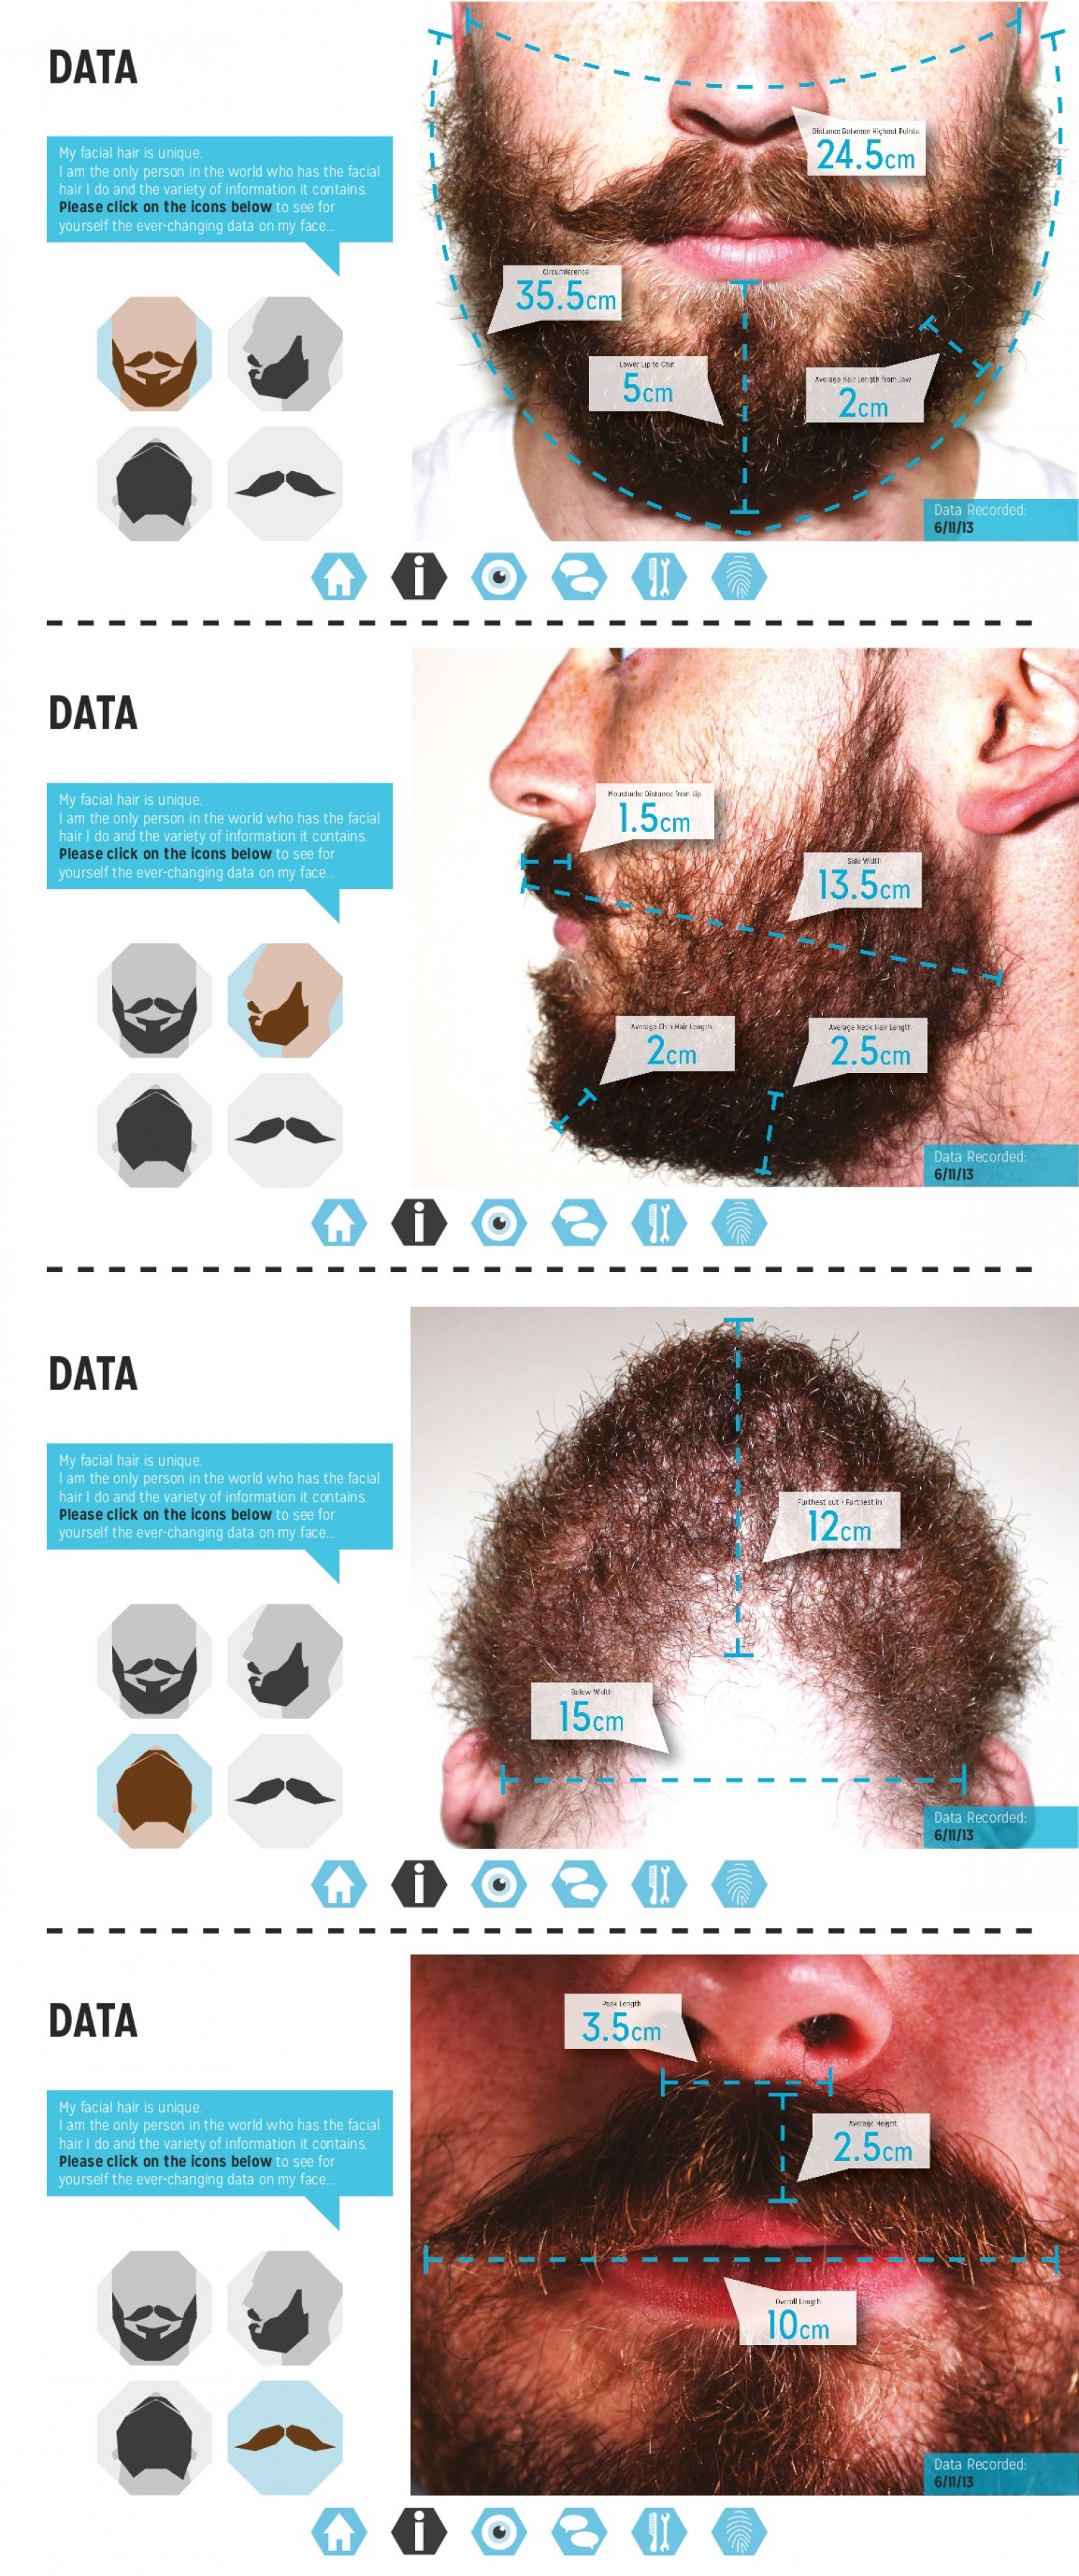 FACE (HAIR) FACTS Infographic